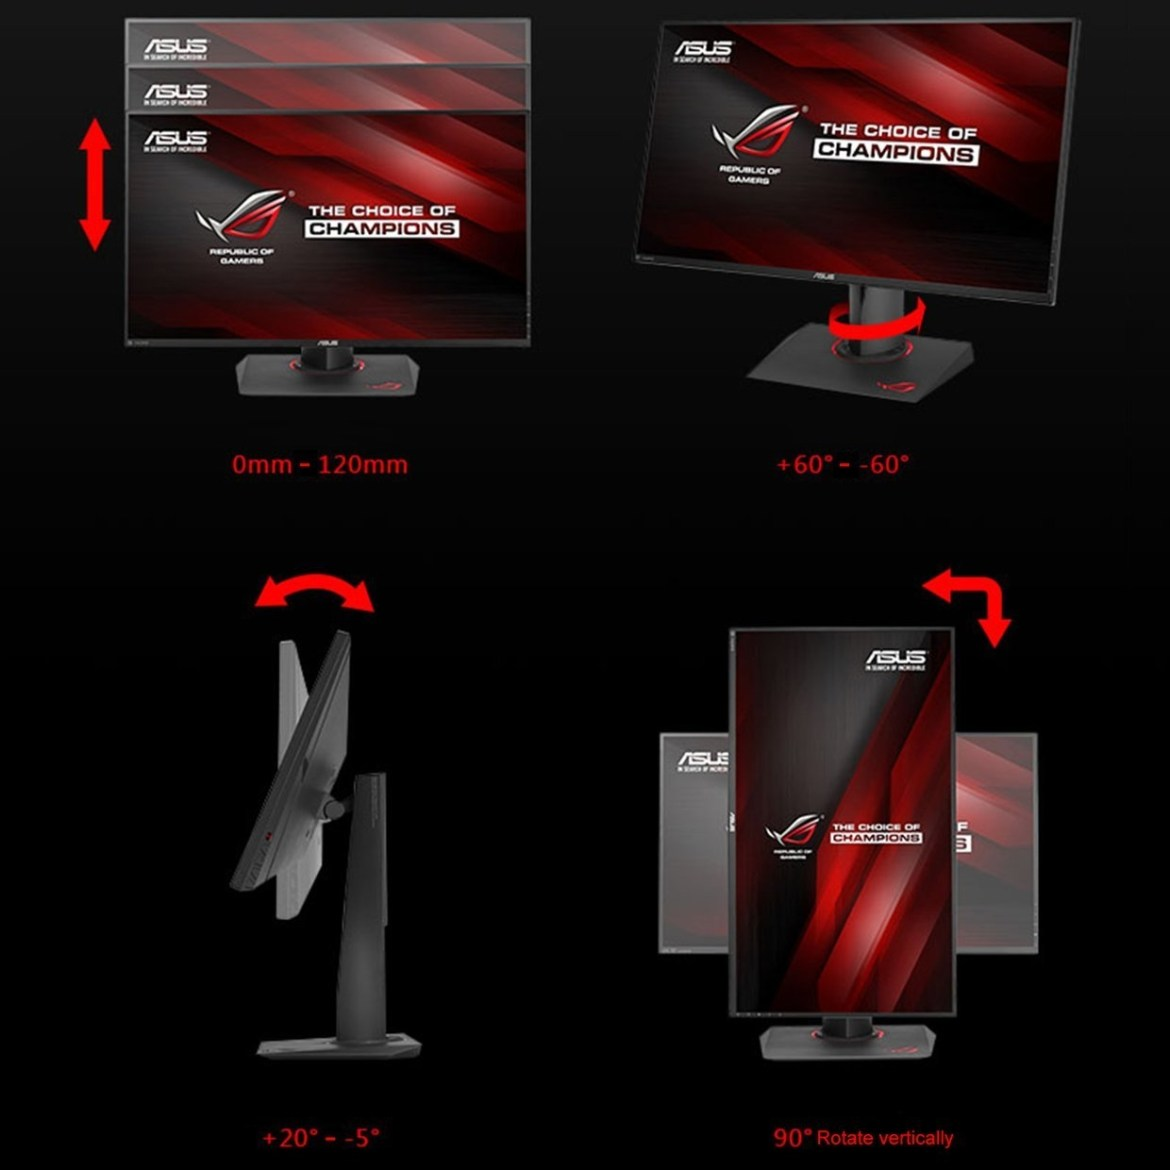 5f65752f3a59cfd312003c230dbd1a49 Generic UJ PG279Q 27 Monitor G SYNC Eye Care Gaming With DP And HDMI Ports Black